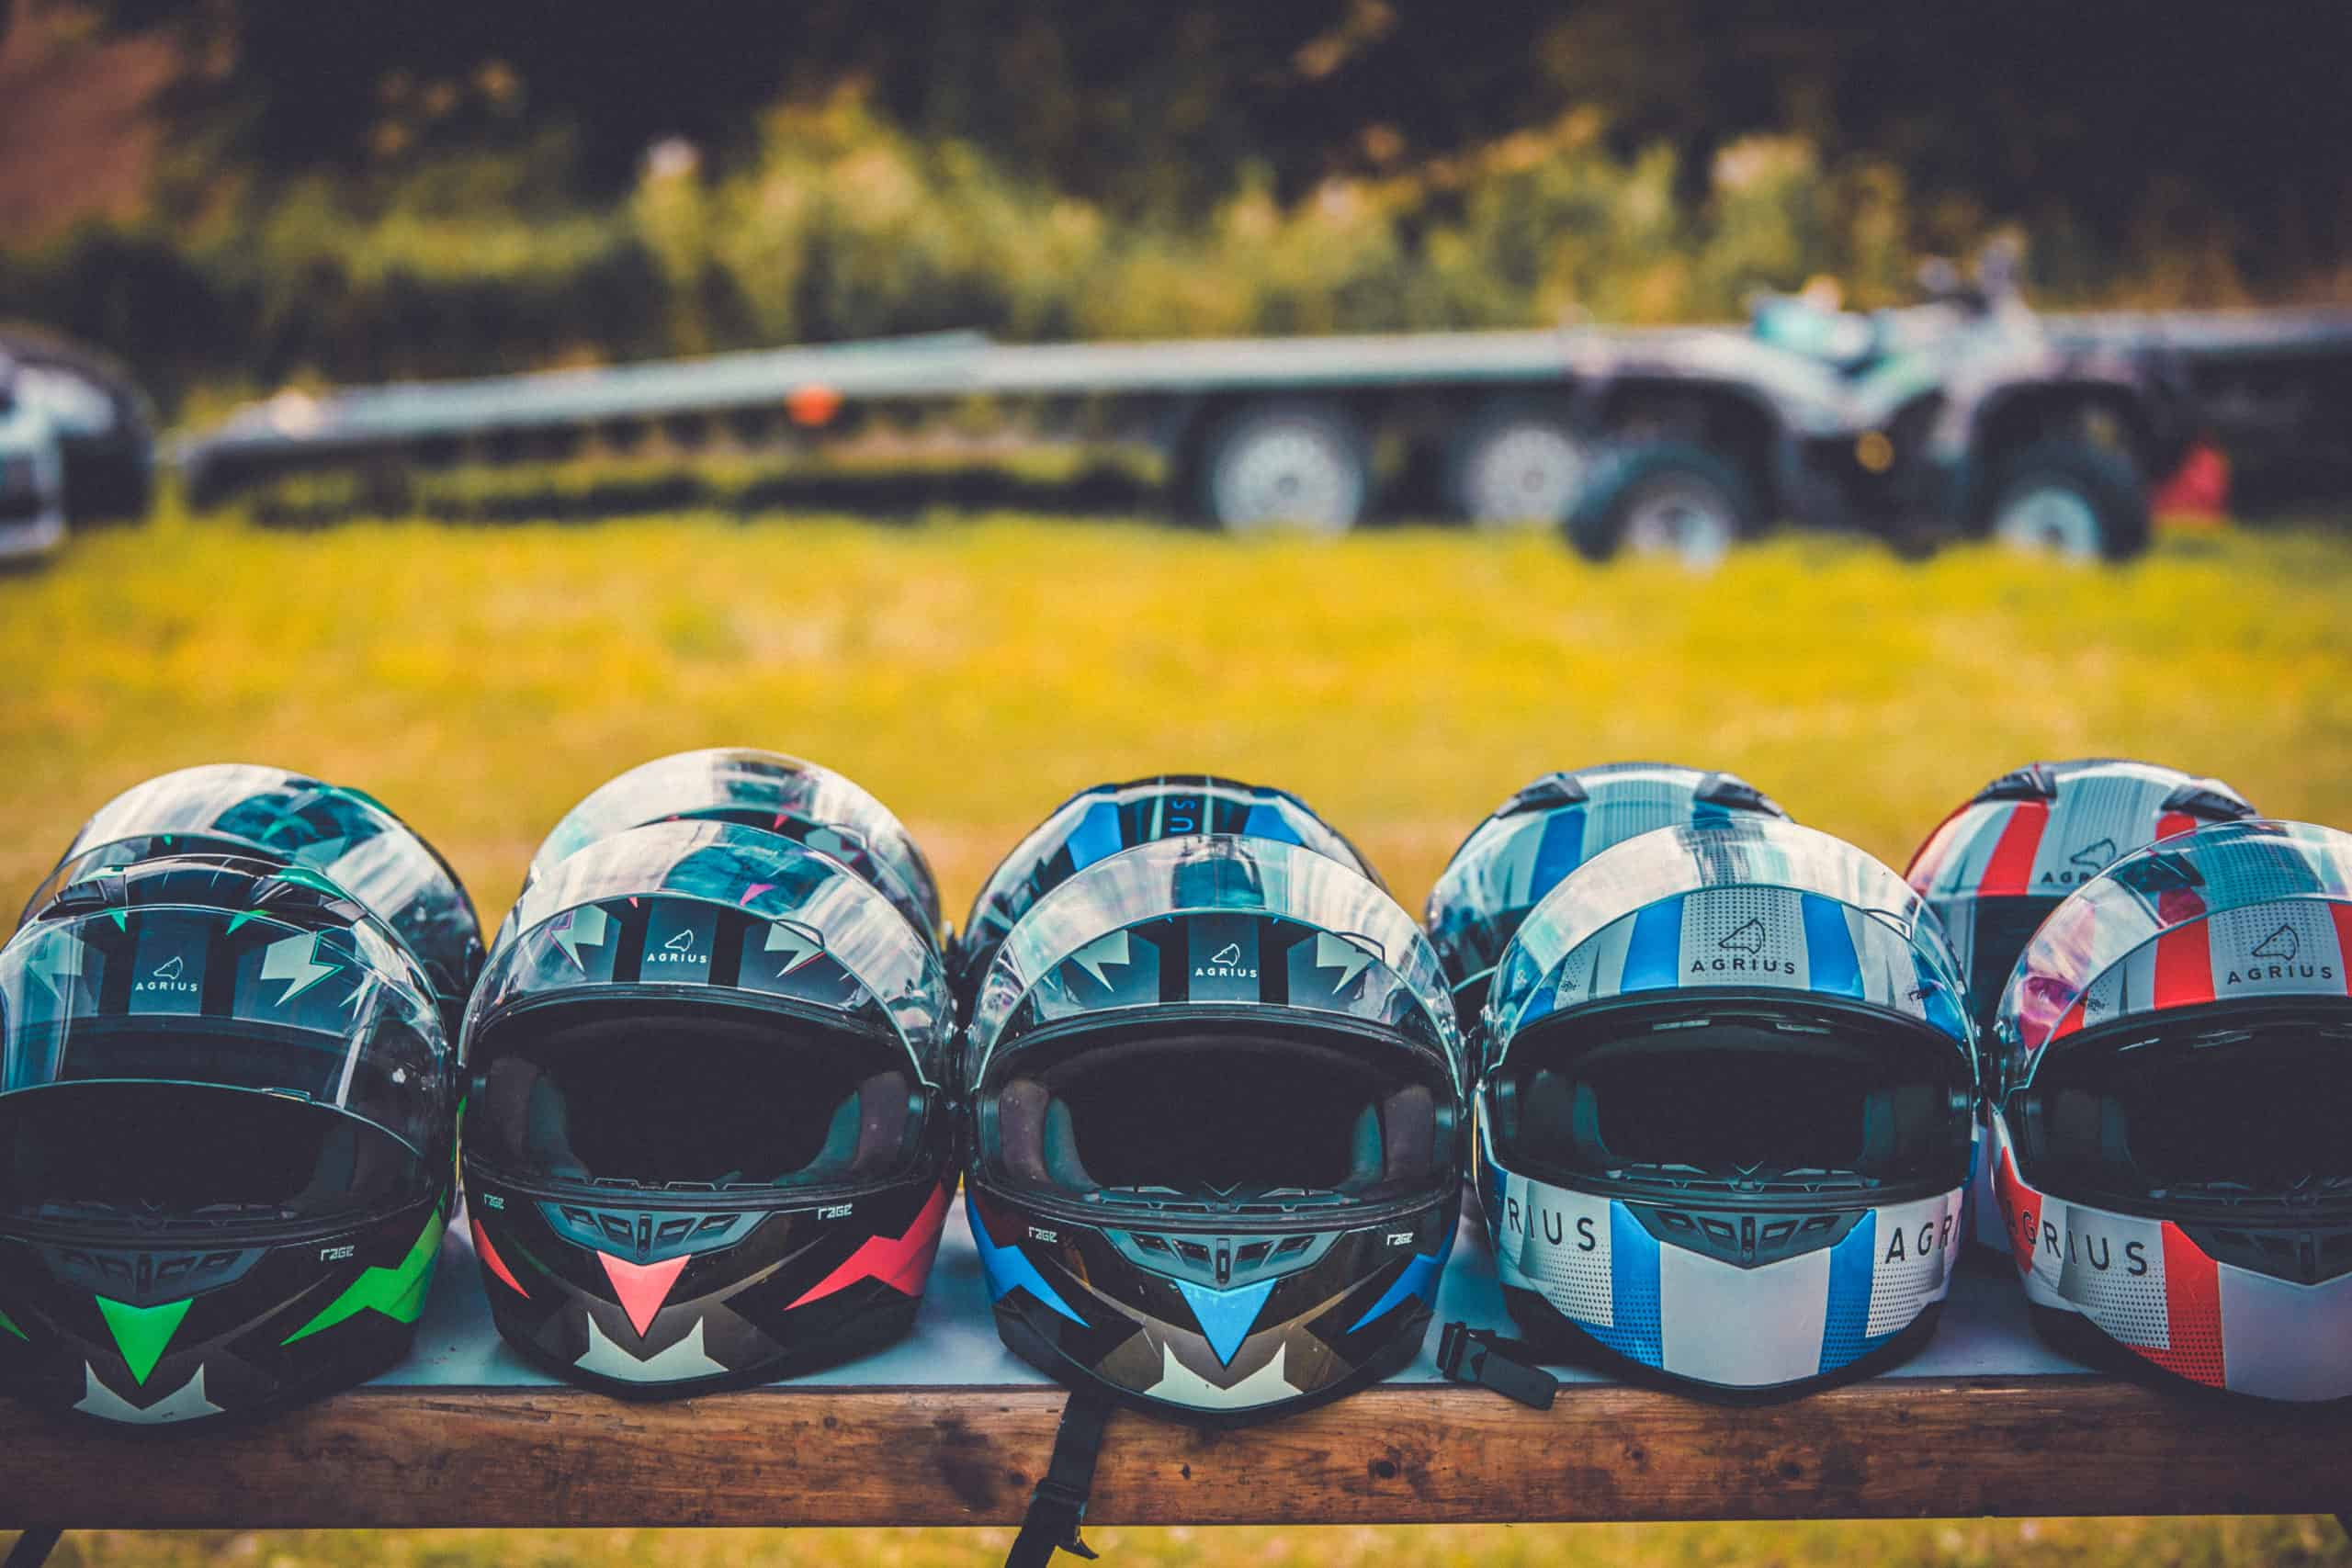 Helmets lined up outside on a bench at Camp Wildfire. The UK's Best Alternative Festival. UK's Top Unique Event. A summer weekend break in a forest near London and Kent. An outdoor woodland retreat featuring adventure activities, live music, DJs, parties and camping. Half summer adventure activity camp, half music festival, for adults only.